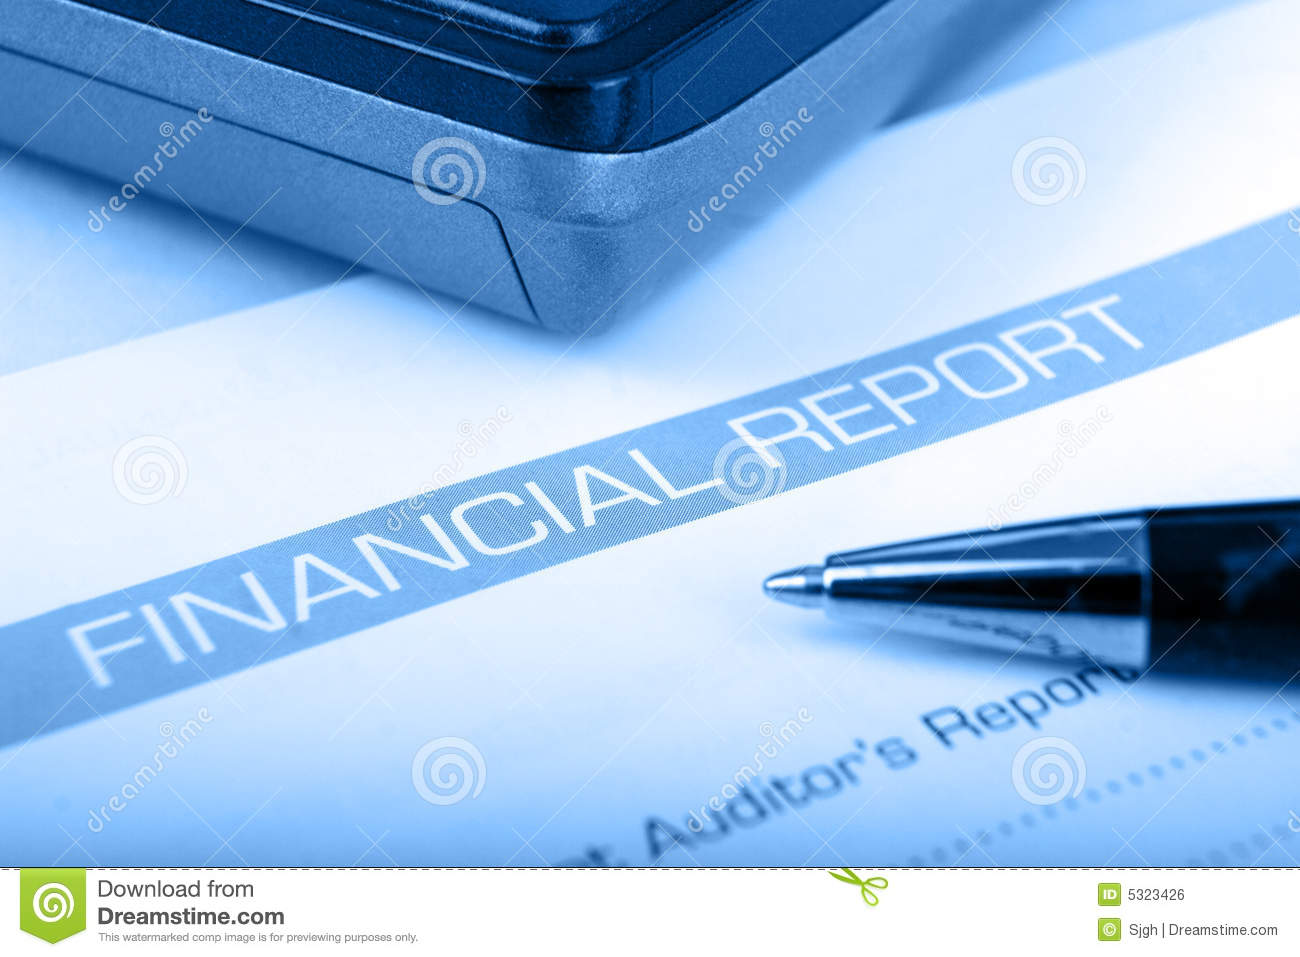 calculator-financial-report-w-blue-background-5323426.jpg